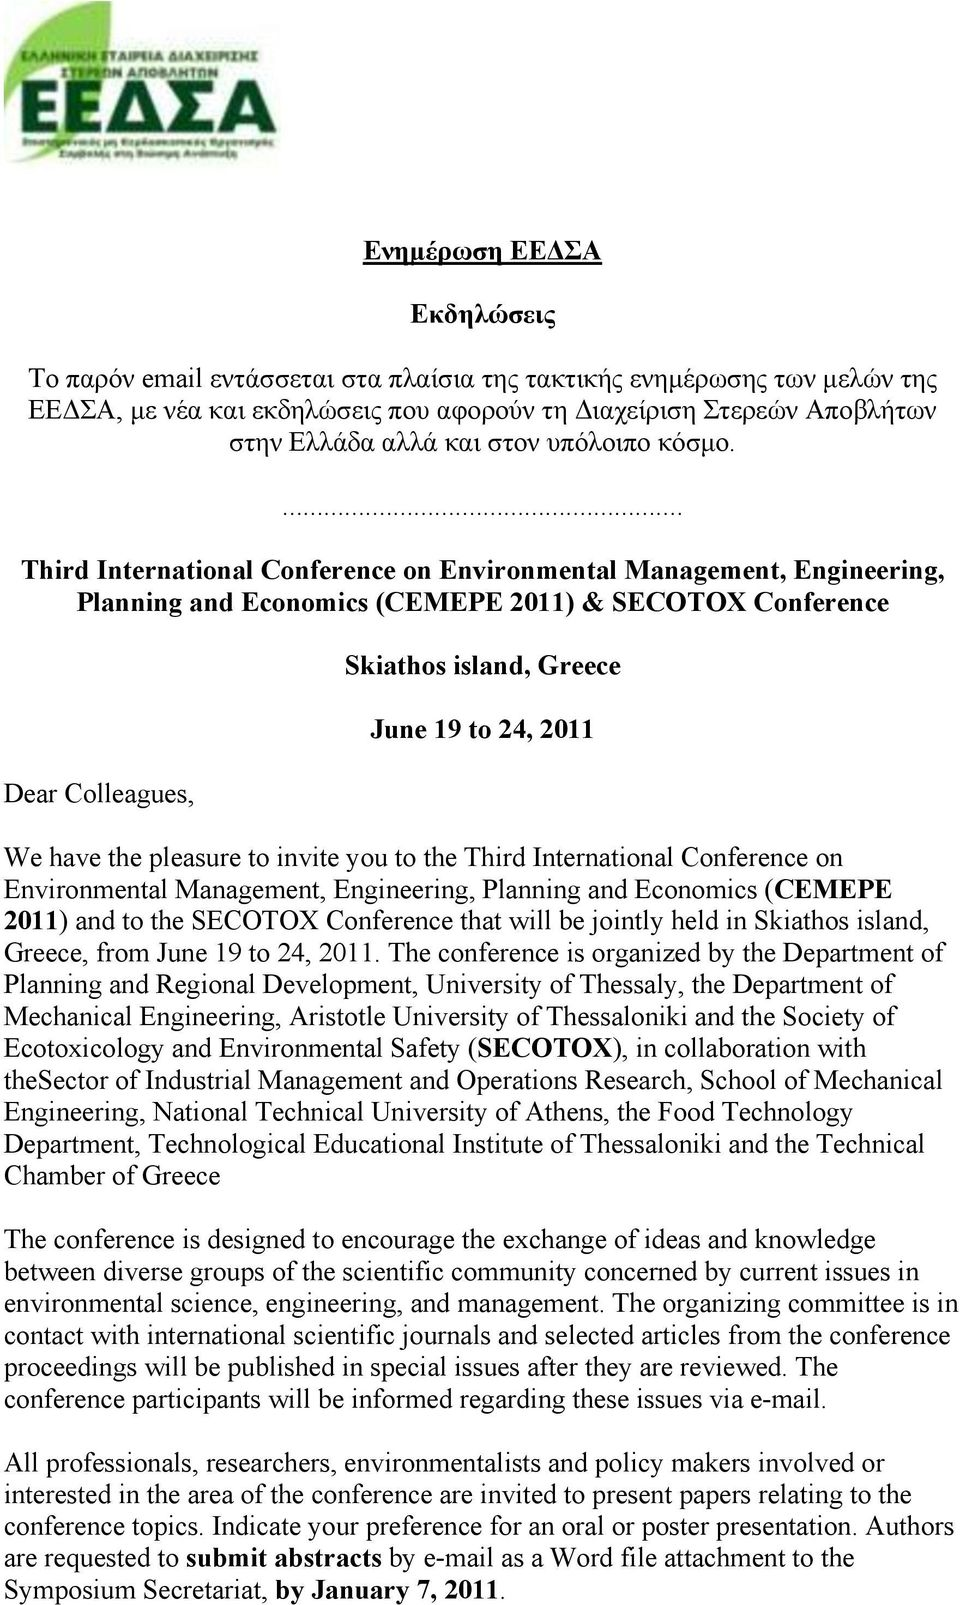 have the pleasure to invite you to the Third International Conference on Environmental Management, Engineering, Planning and Economics (CEMEPE 2011) and to the SECOTOX Conference that will be jointly